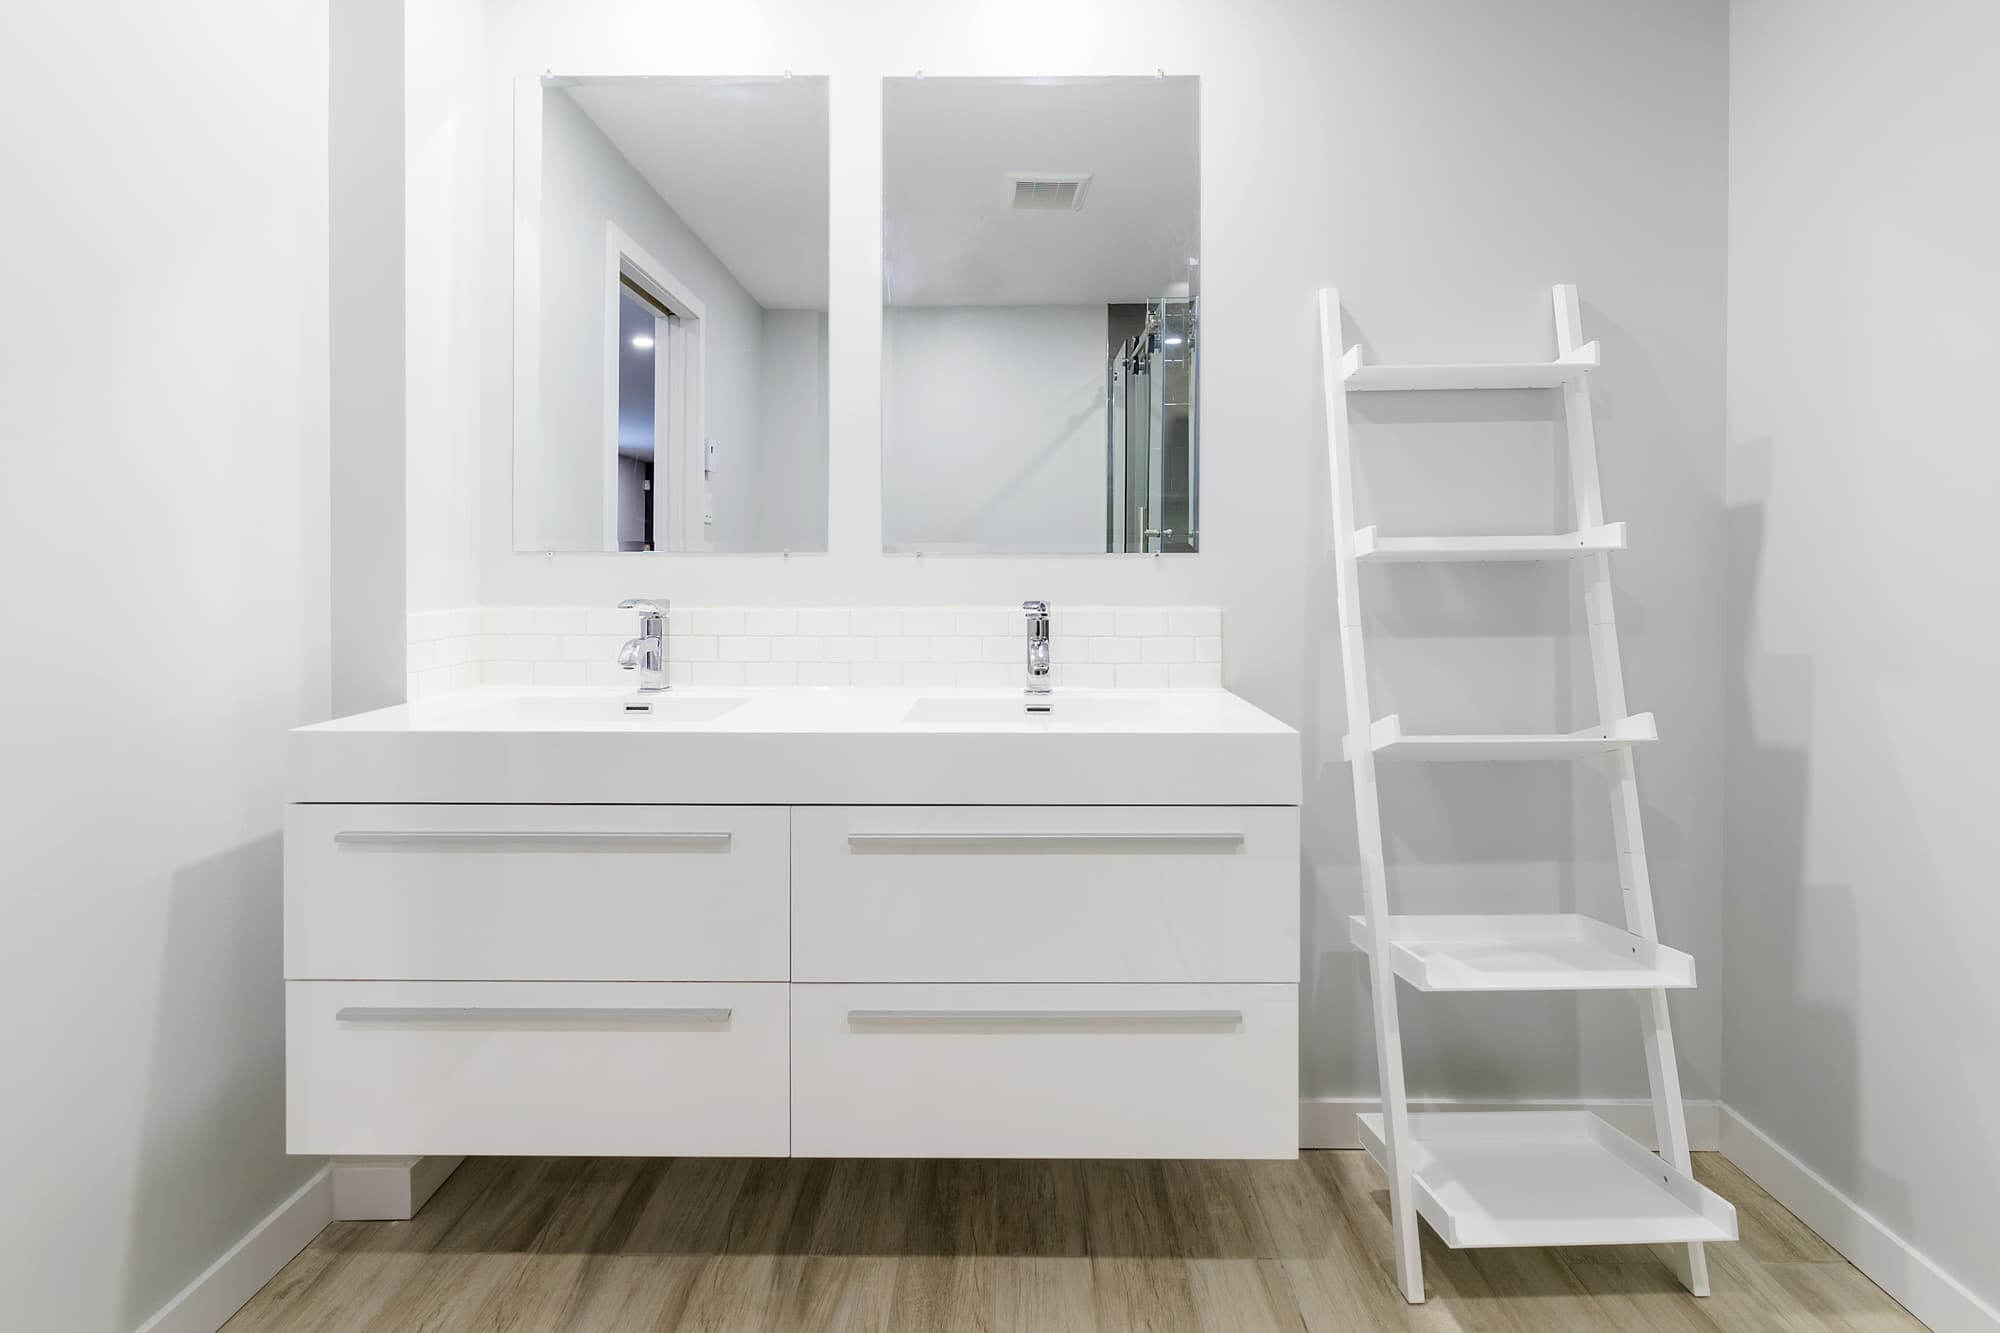 White bathroom vanity in a basement